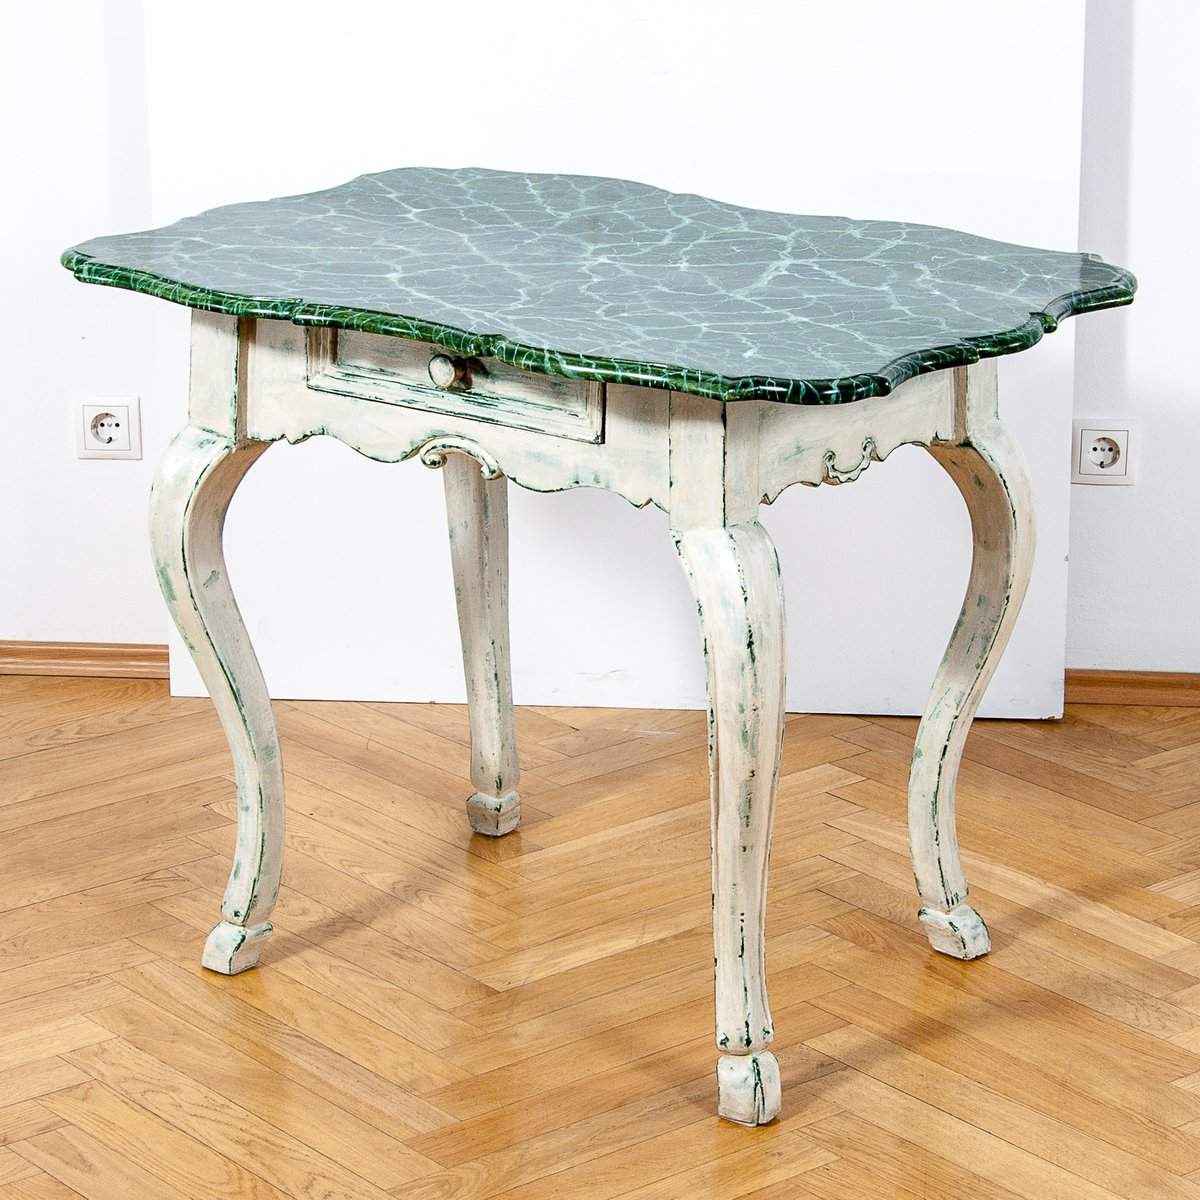 19th Century Louis Xv Style Baroque Side Table 9 2 994 00 Price Per Piece